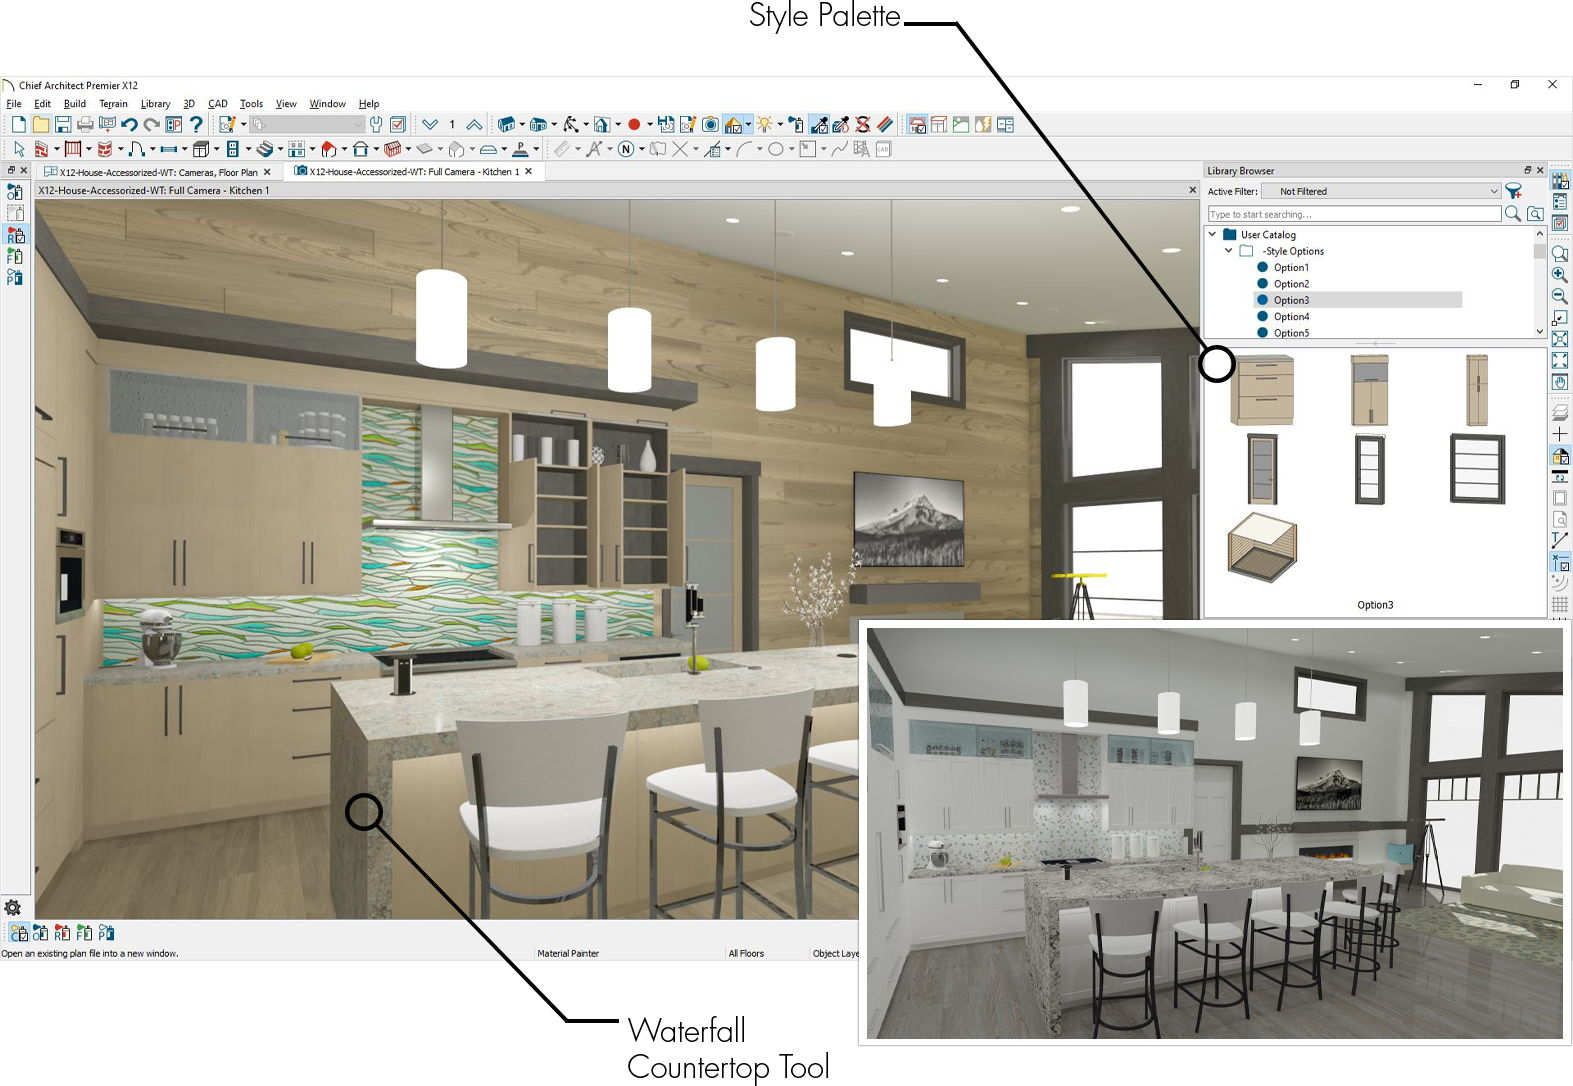 Two types of kitchen views demonstrating the style palette feature in Chief Architect.